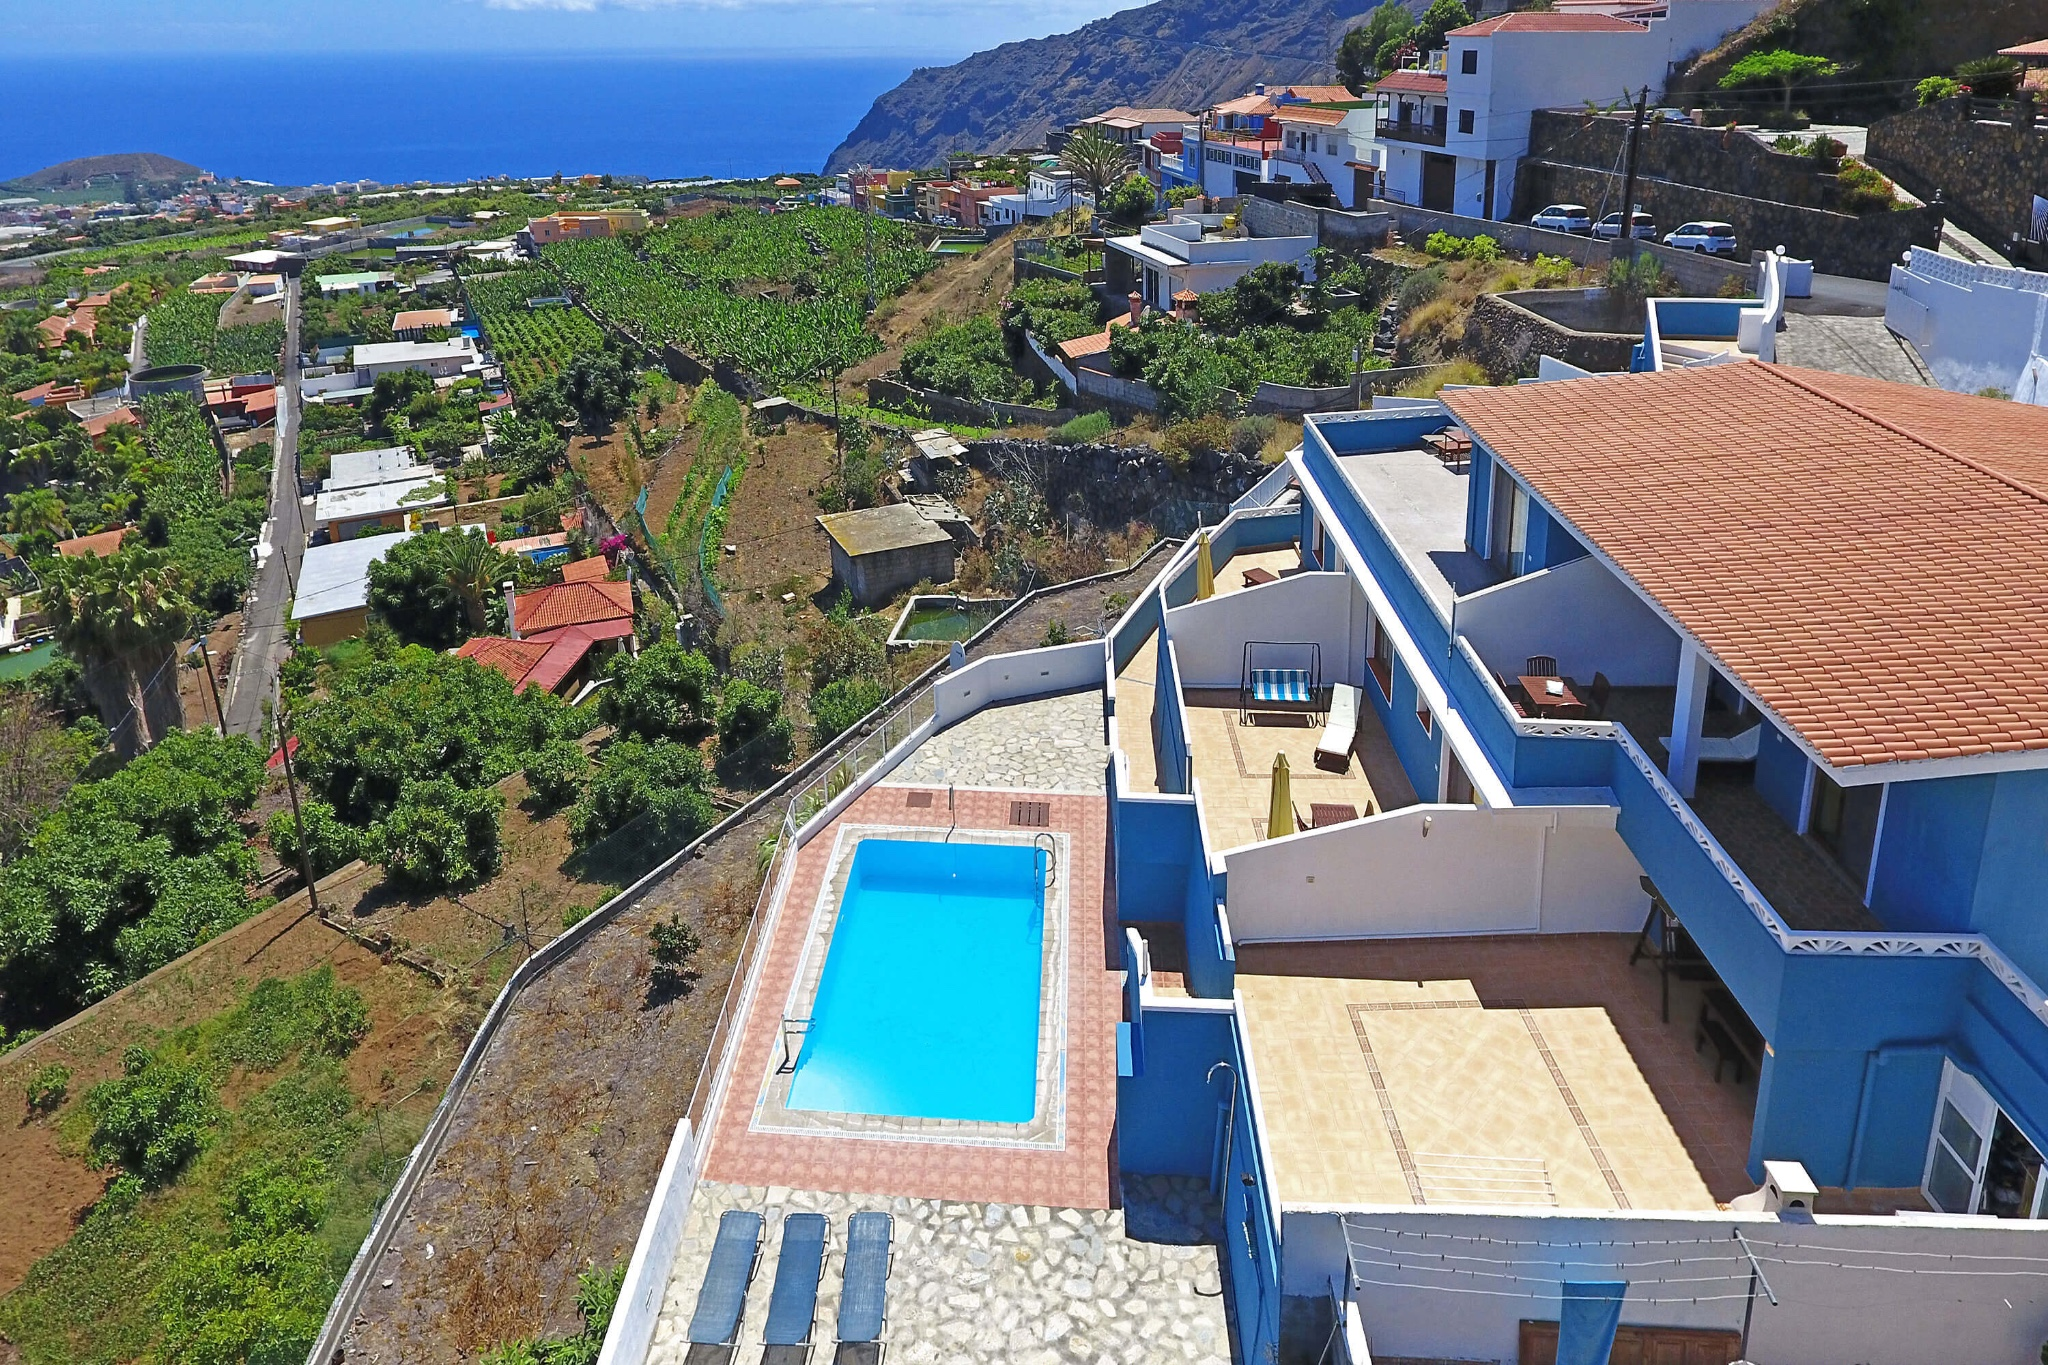 Pleasant holiday apartment with communal pool and large terrace to enjoy the views towards the sea and the mountains